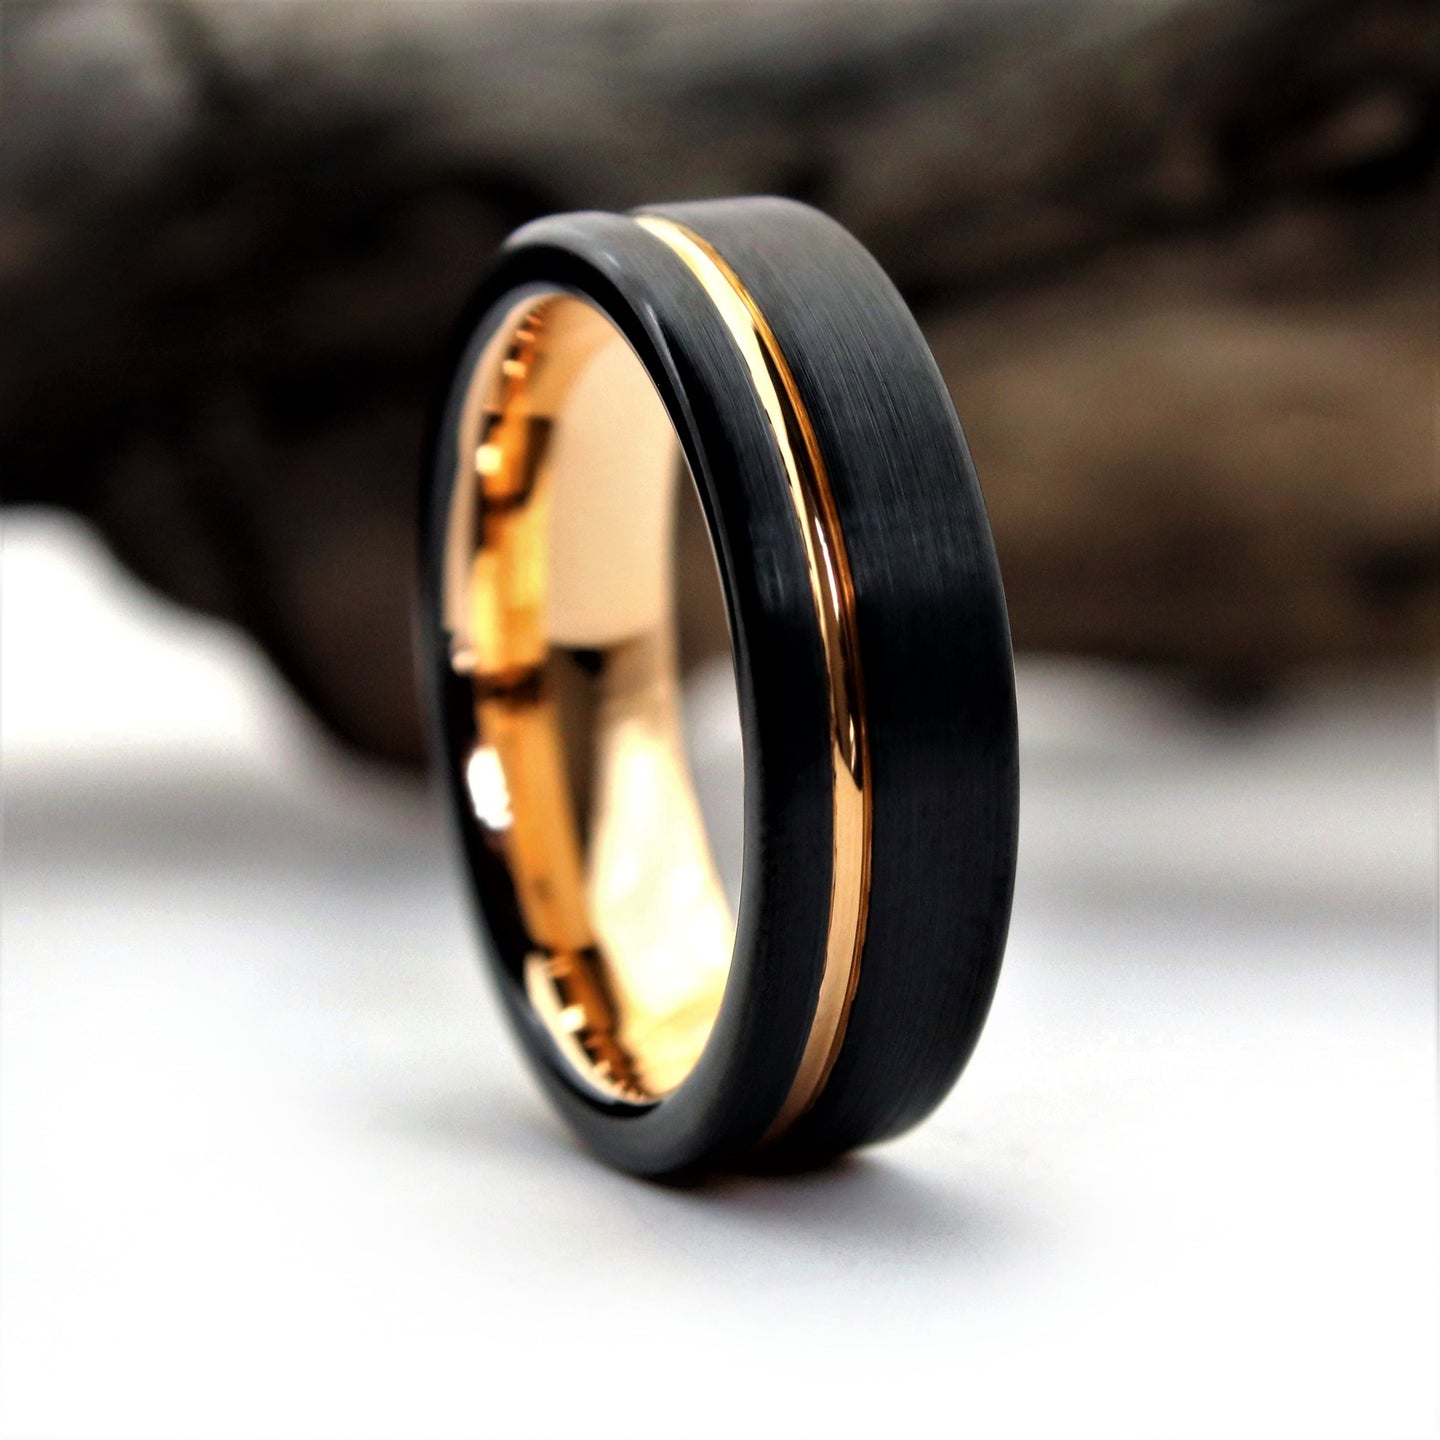 6 mm Black Rose Gold Wedding Ring | Northbands